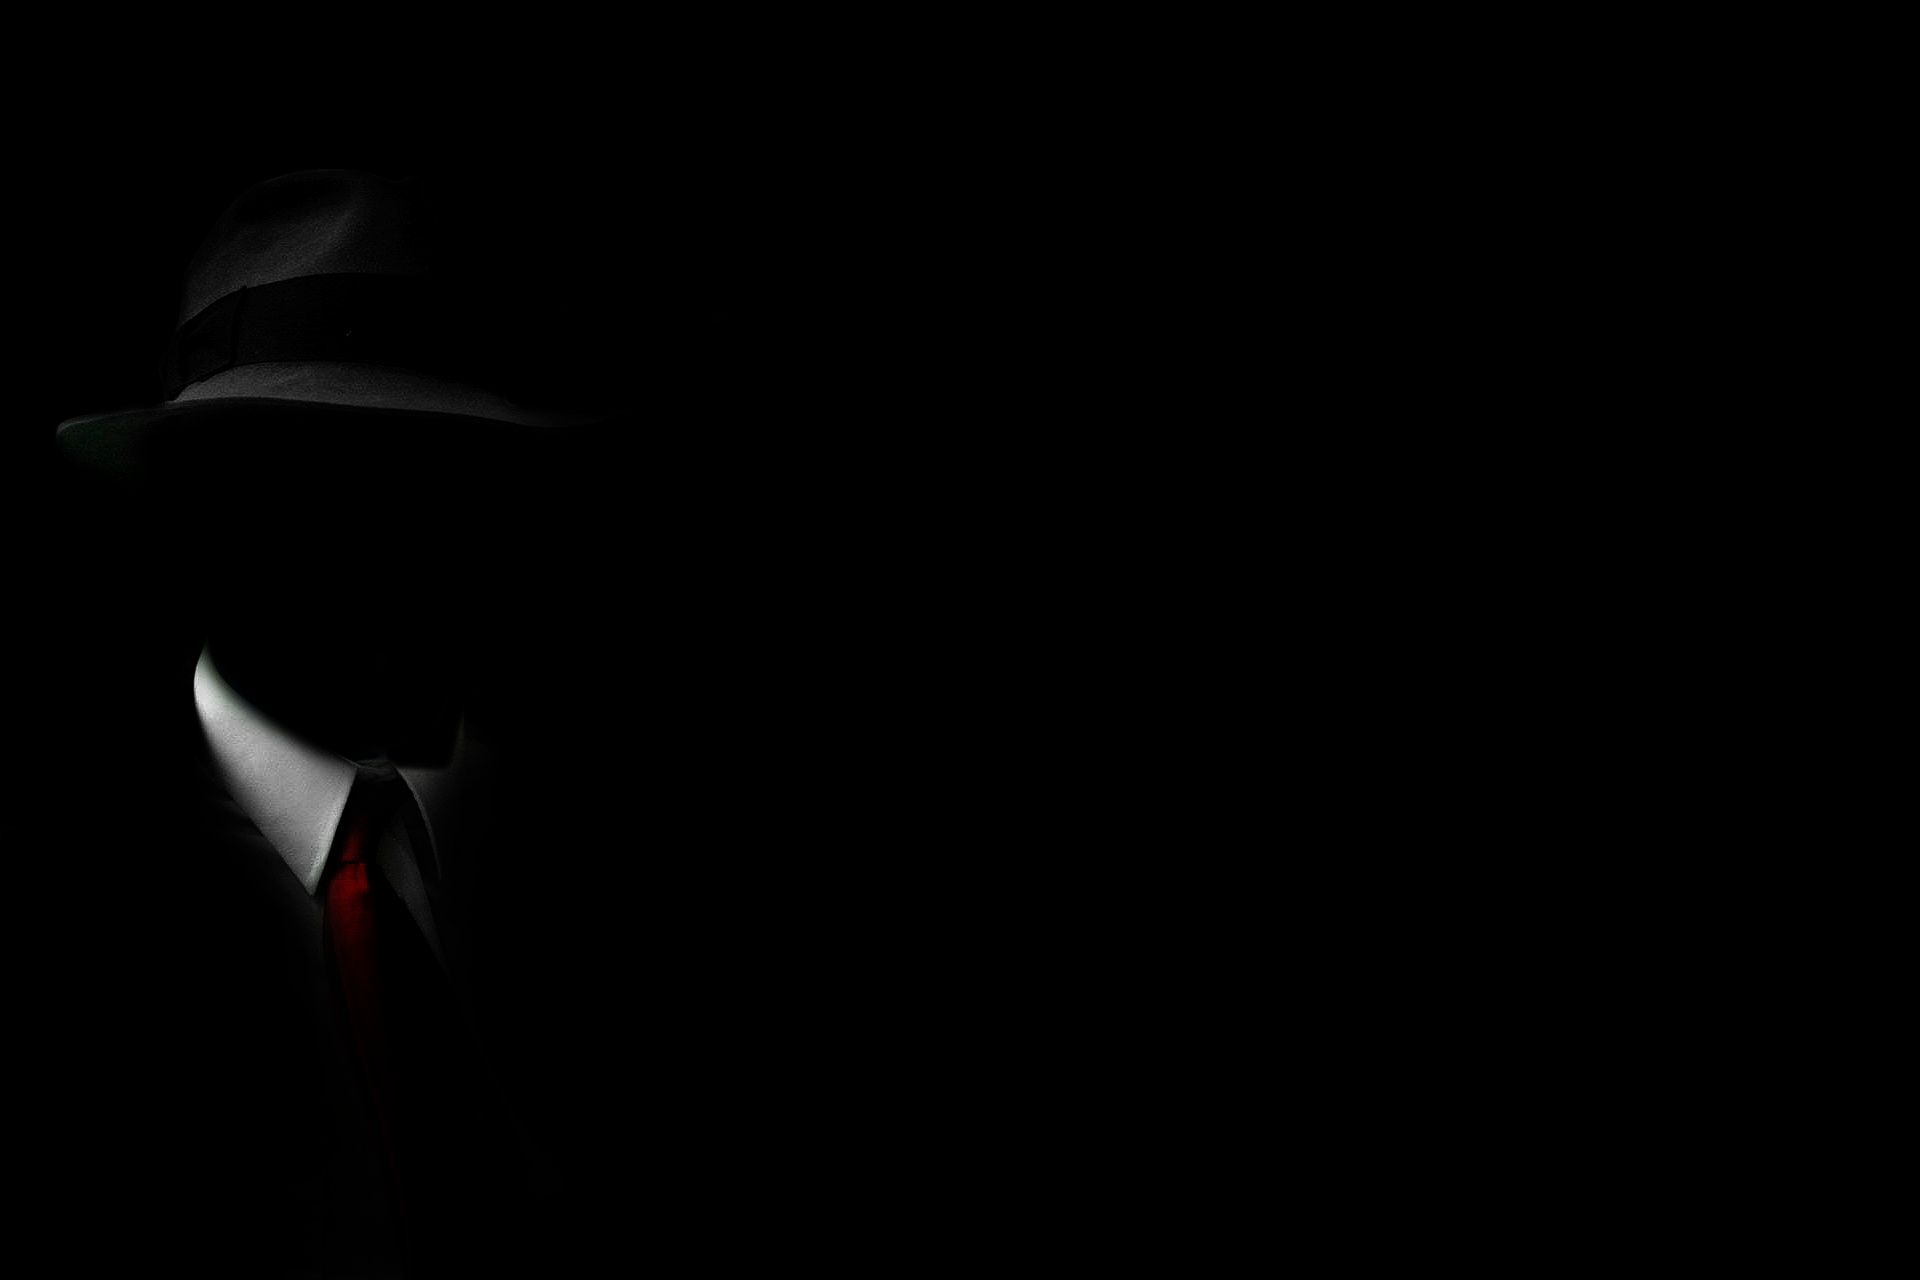 Anonymous hd wallpaper background image 1920x1280 id - Background anonymous ...